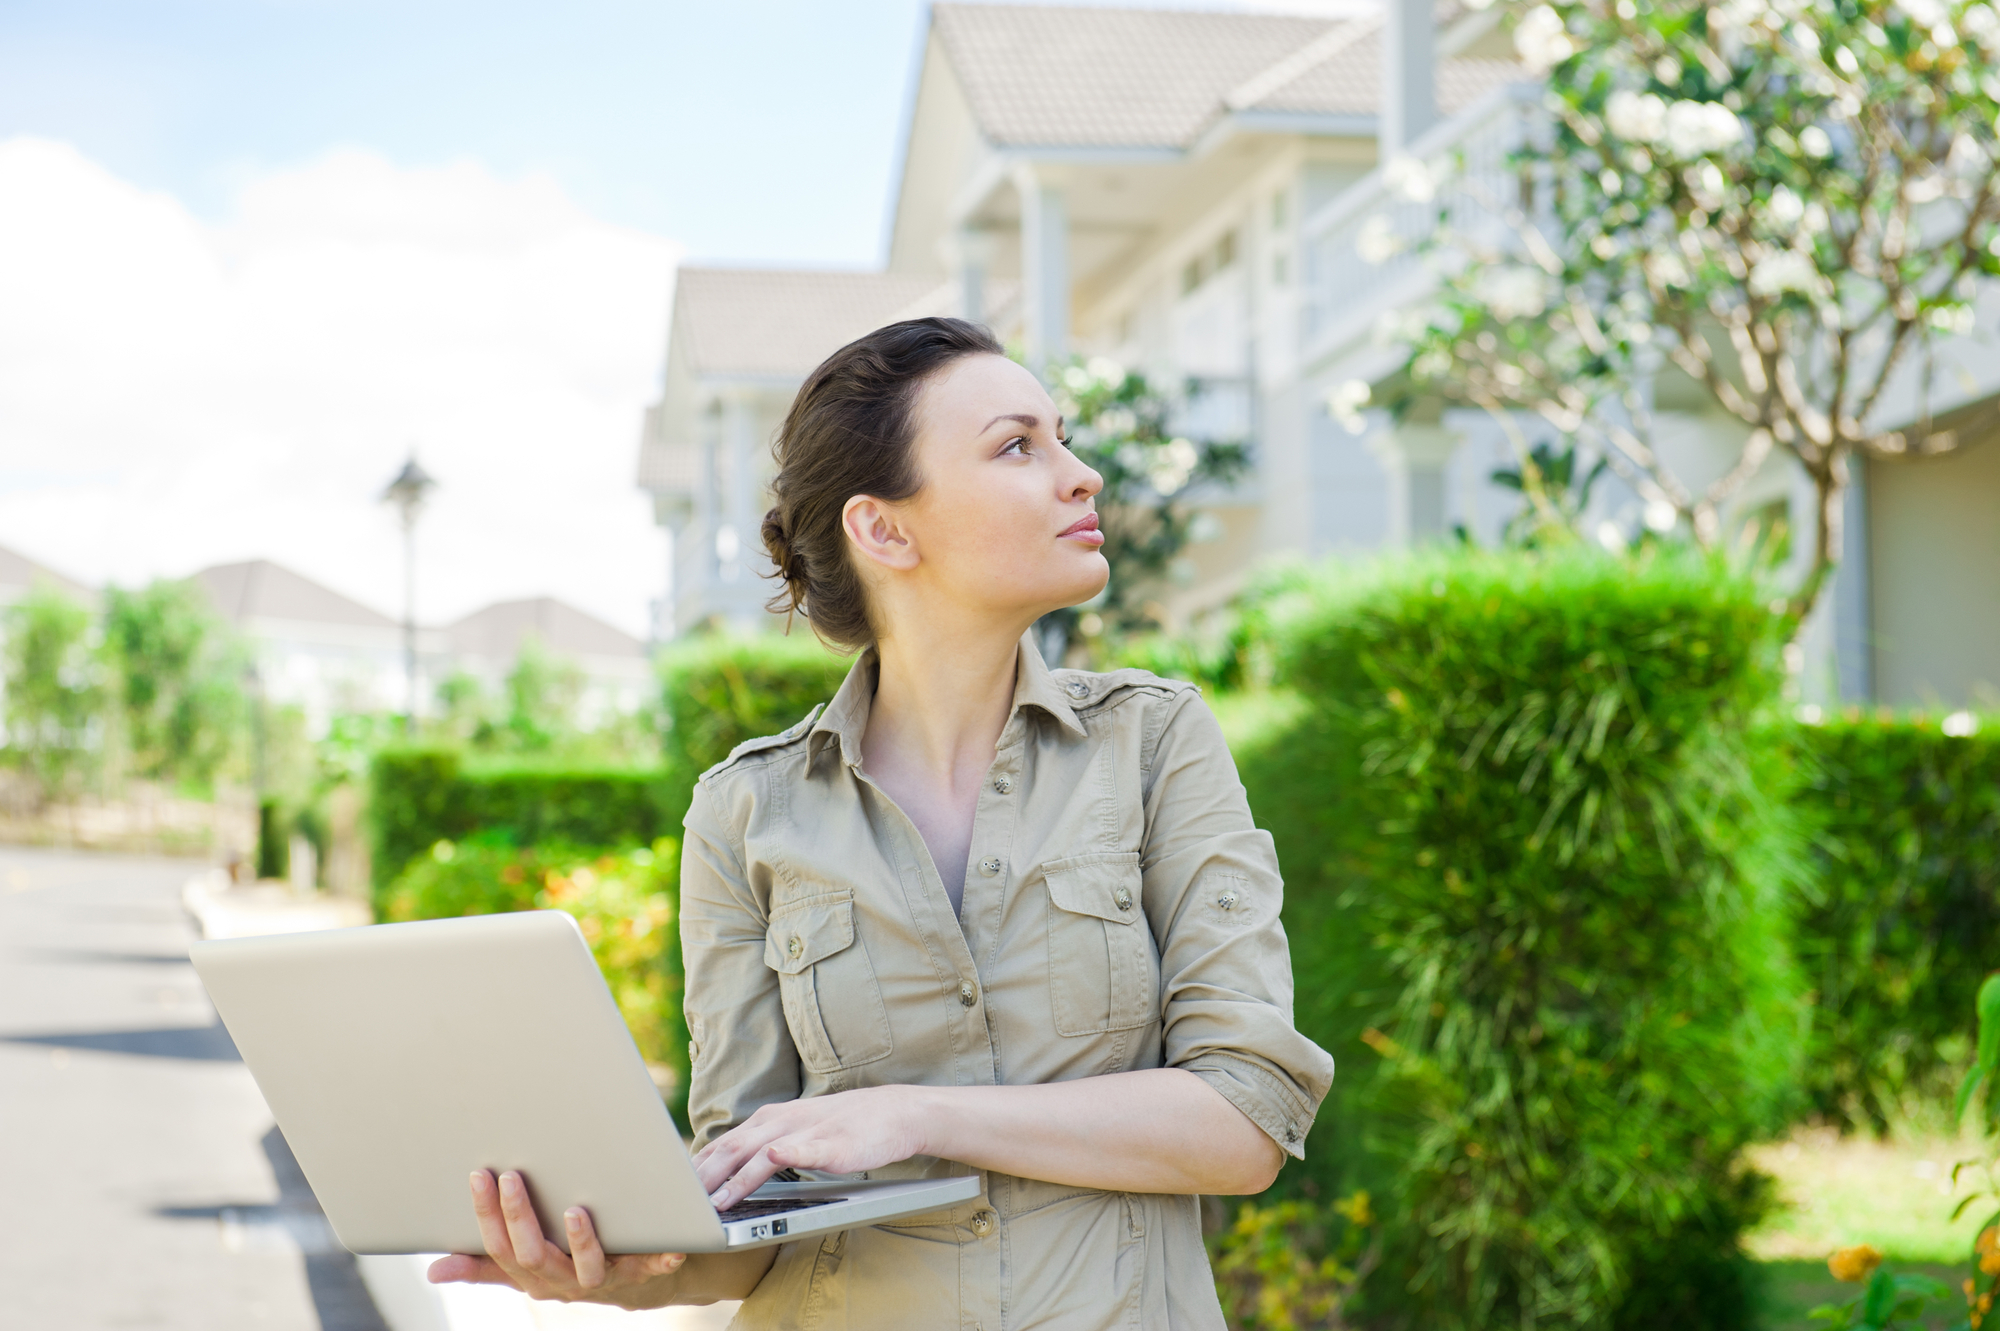 Young businesswoman (real estate agent) holding a laptop and presenting detached family house